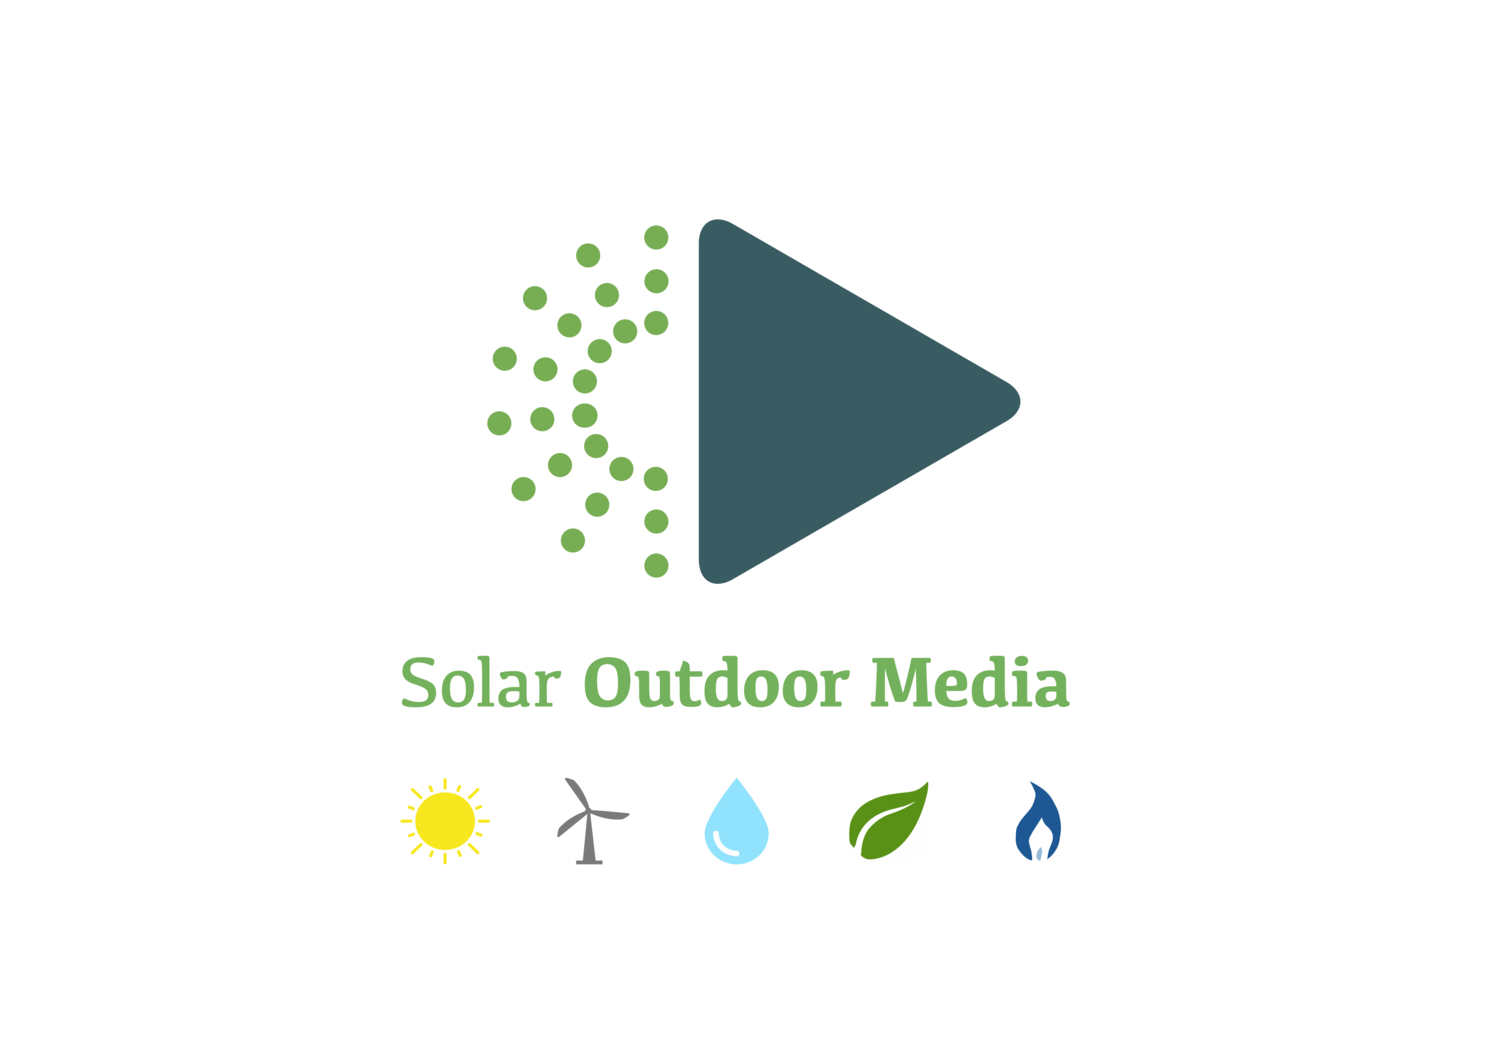 Solar Outdoor Media GmbH